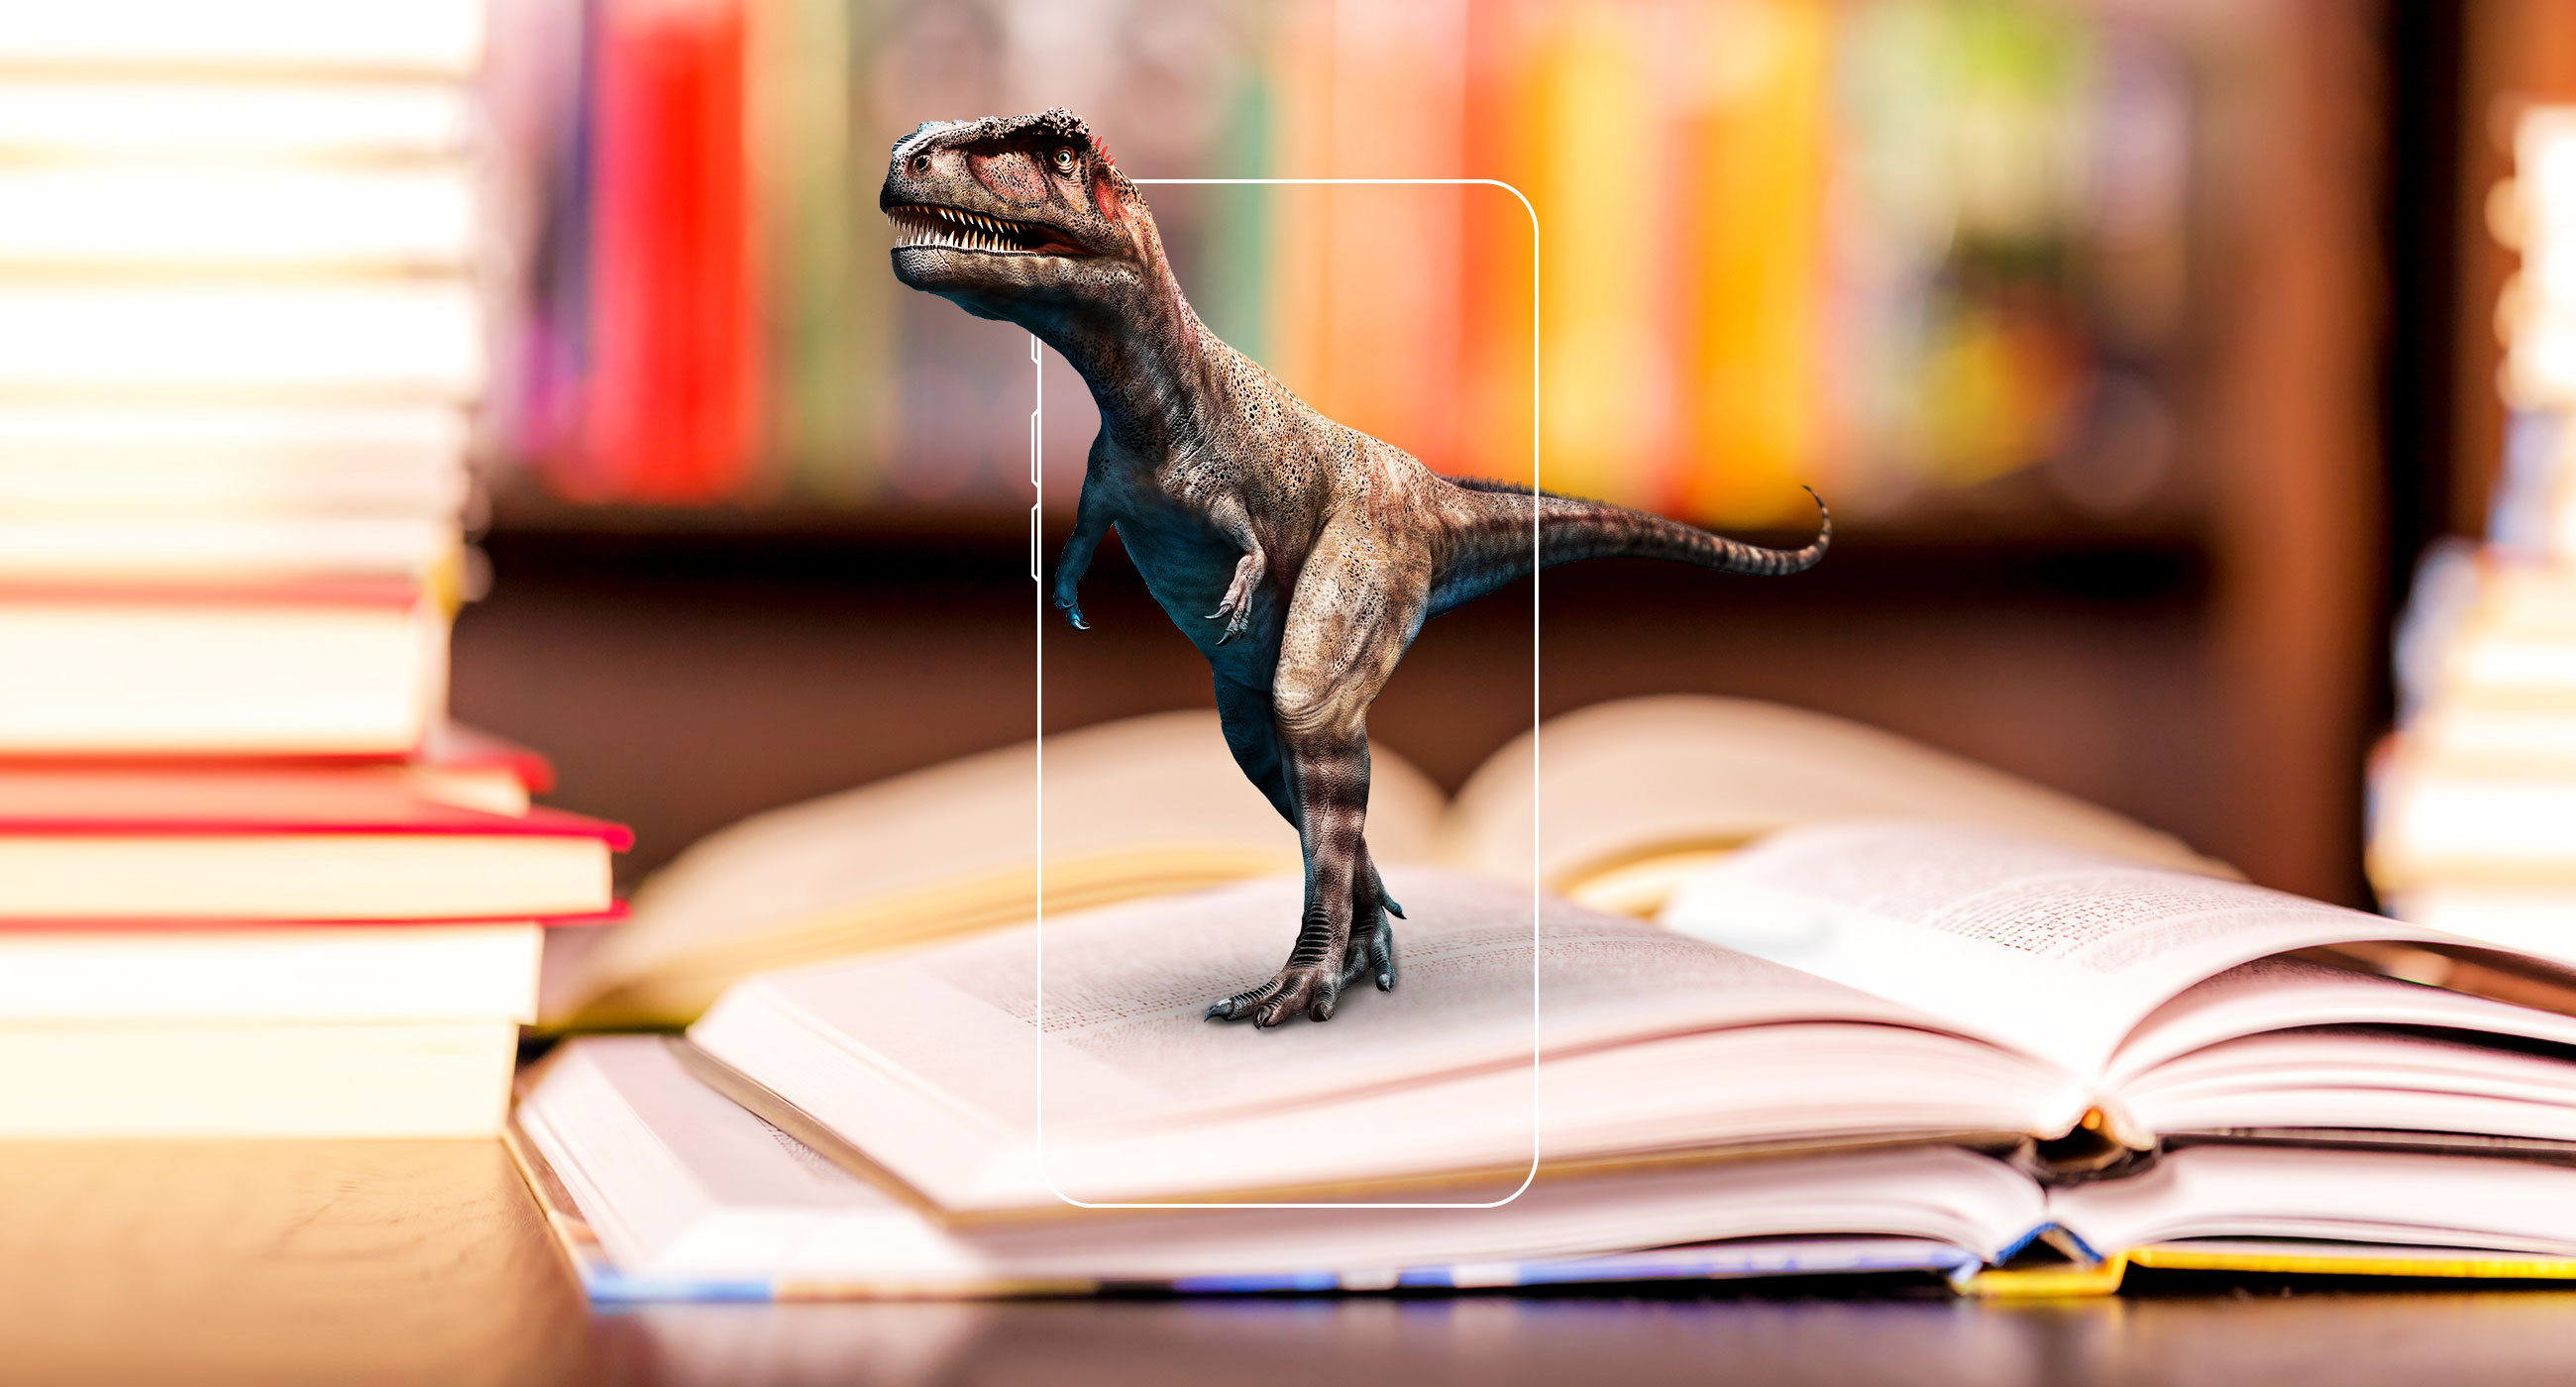 Explore Augmented Reality